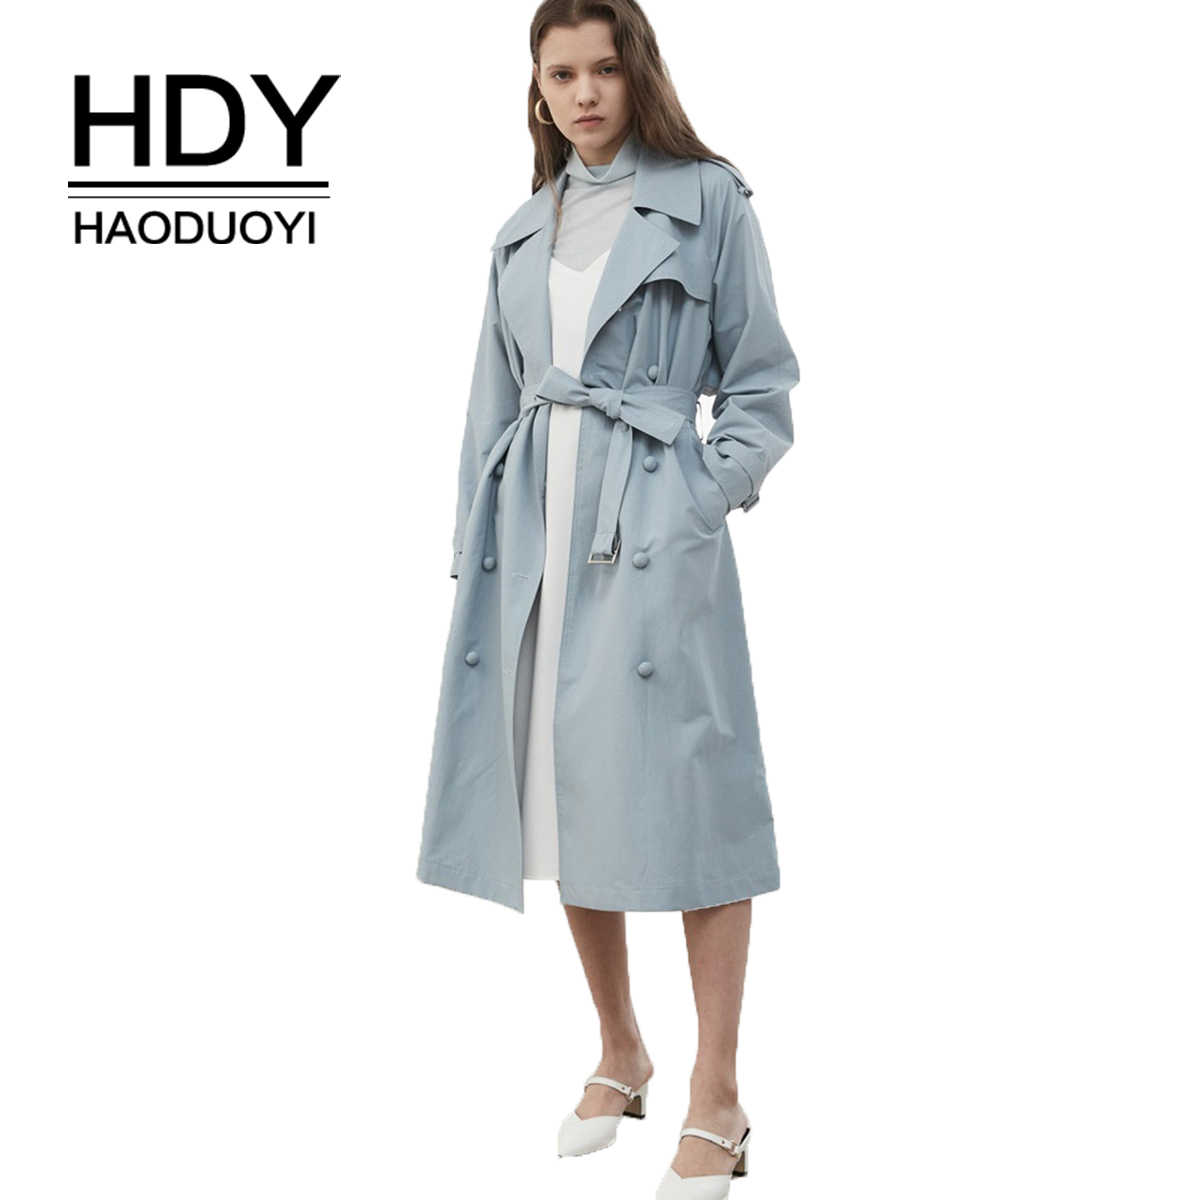 HDY Haoduoyi ผู้หญิงลำลอง Double Breasted Outwear Sashes Office Coat Chic Epaulet Design เสื้อโค้ทยาวฤดูใบไม้ร่วง